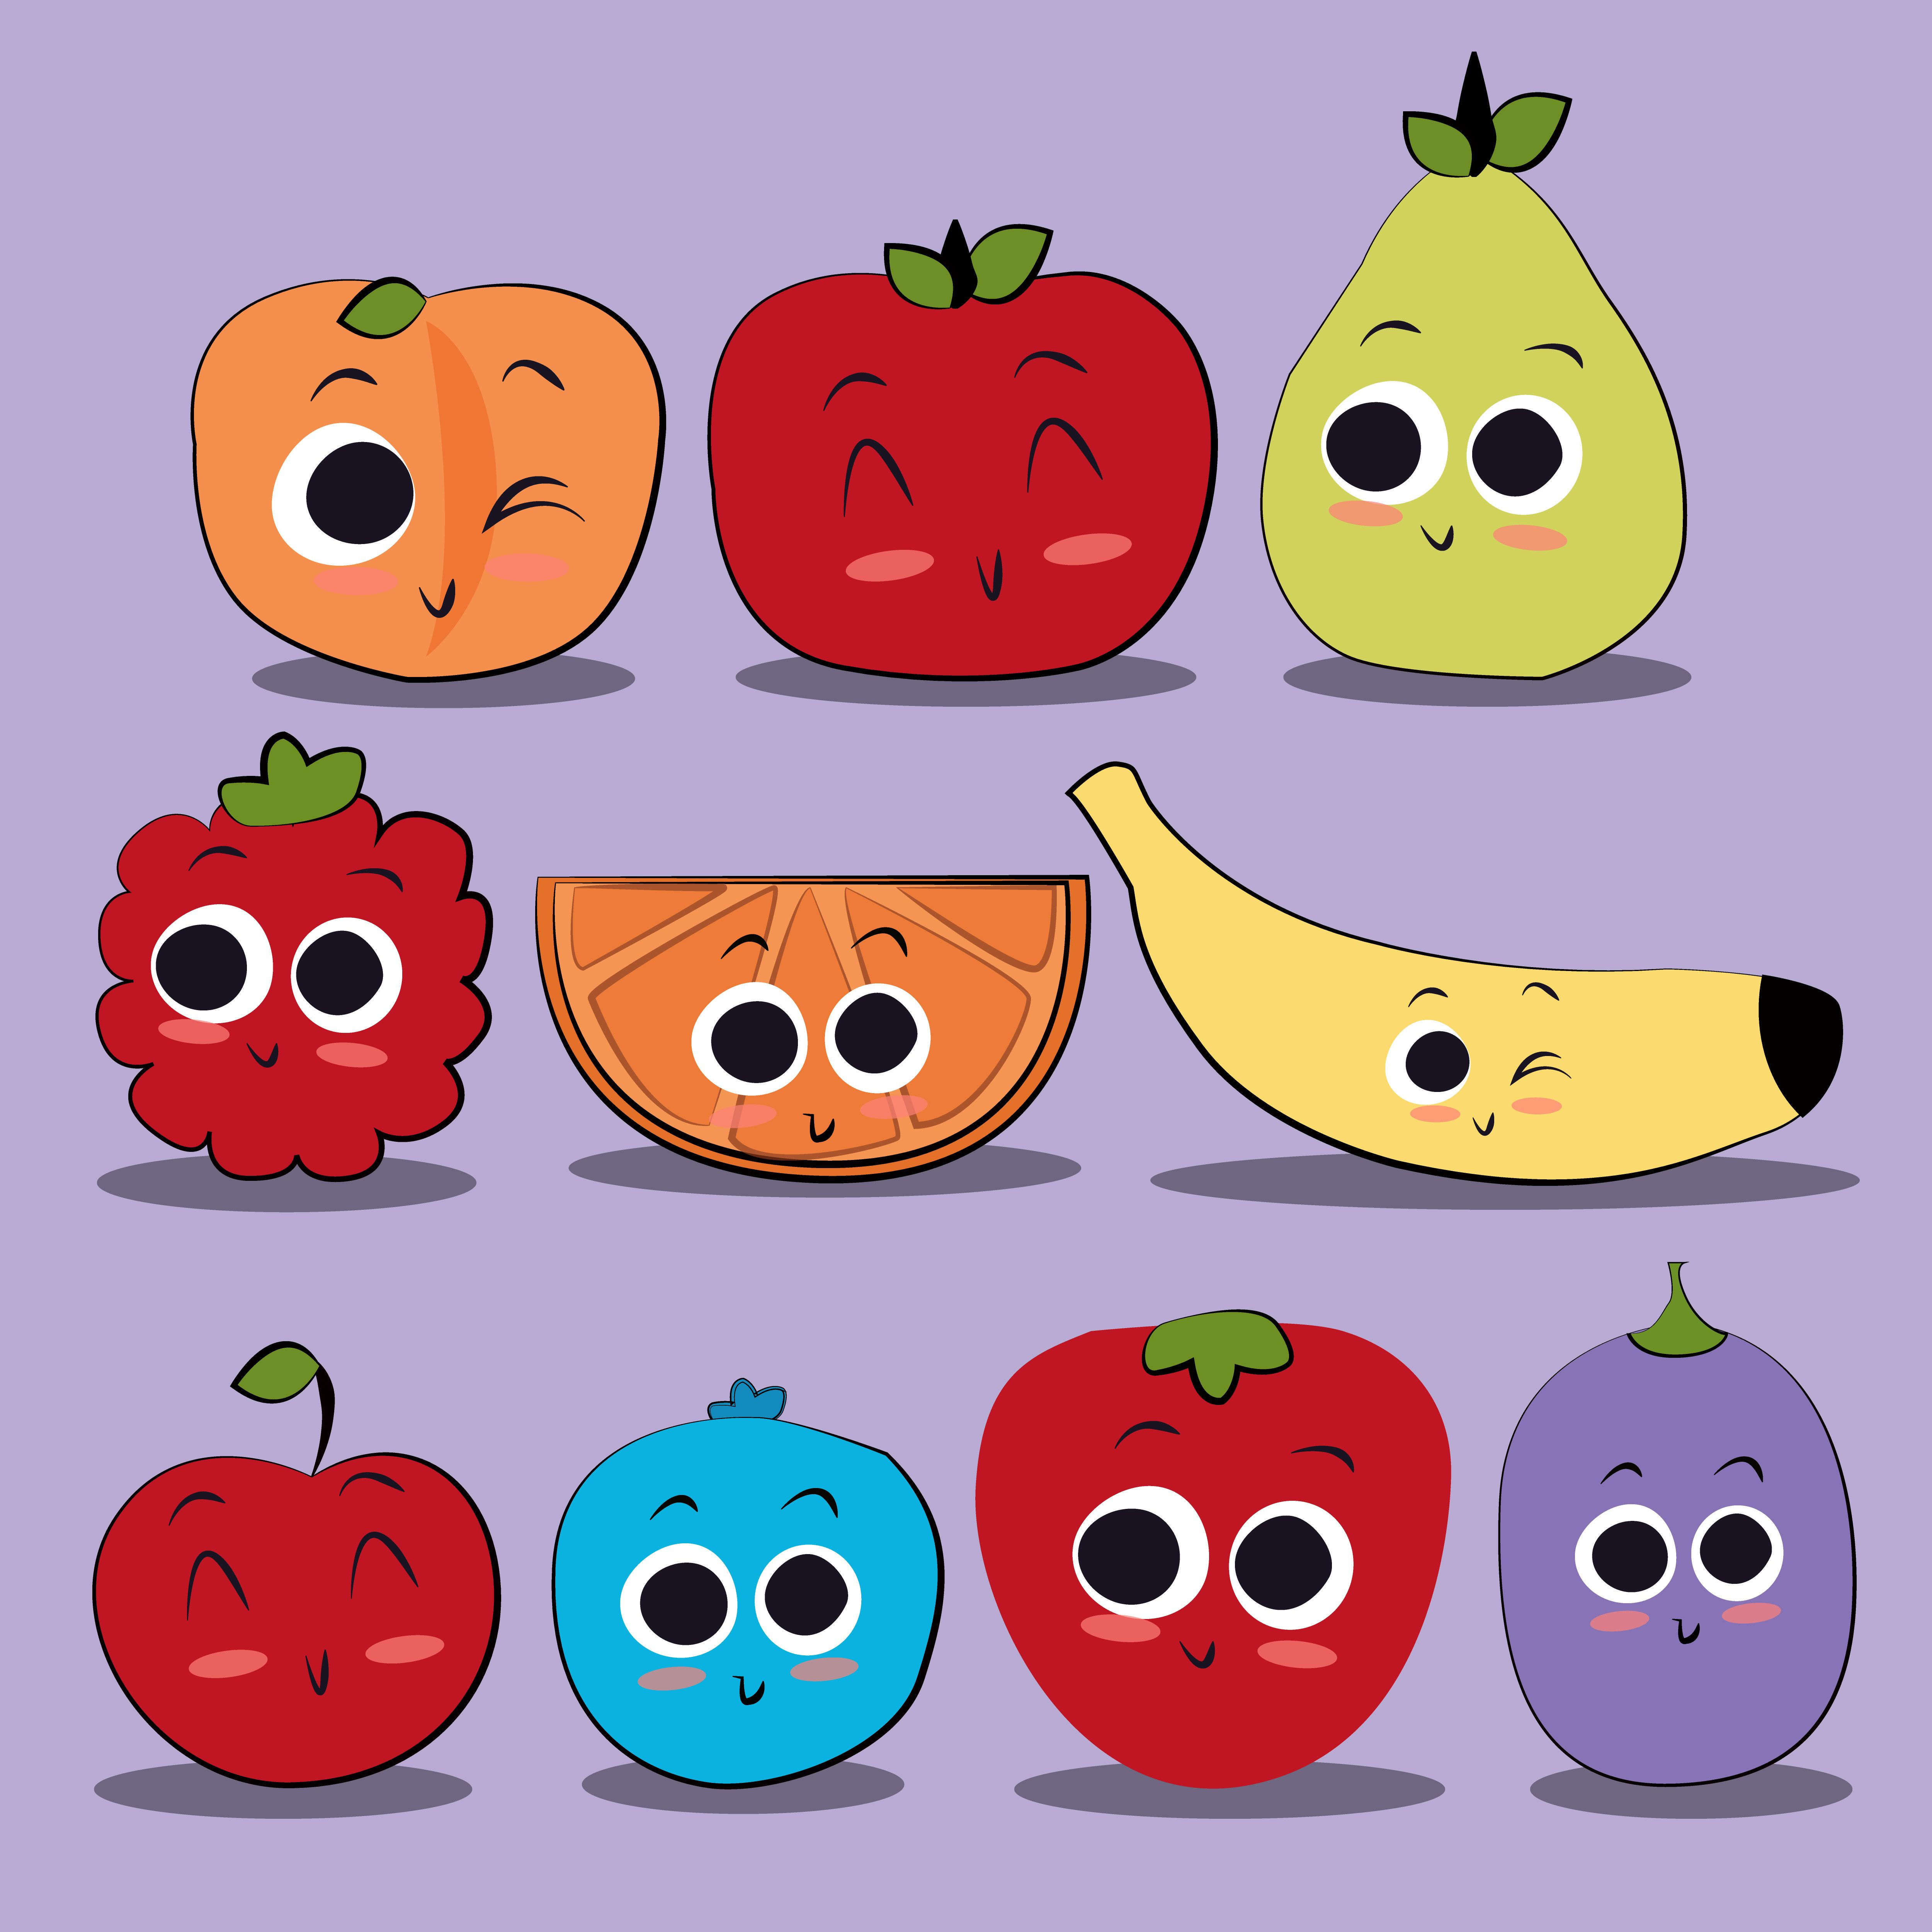 Cute character fruits illustration. Strawberries clipart fun fruit